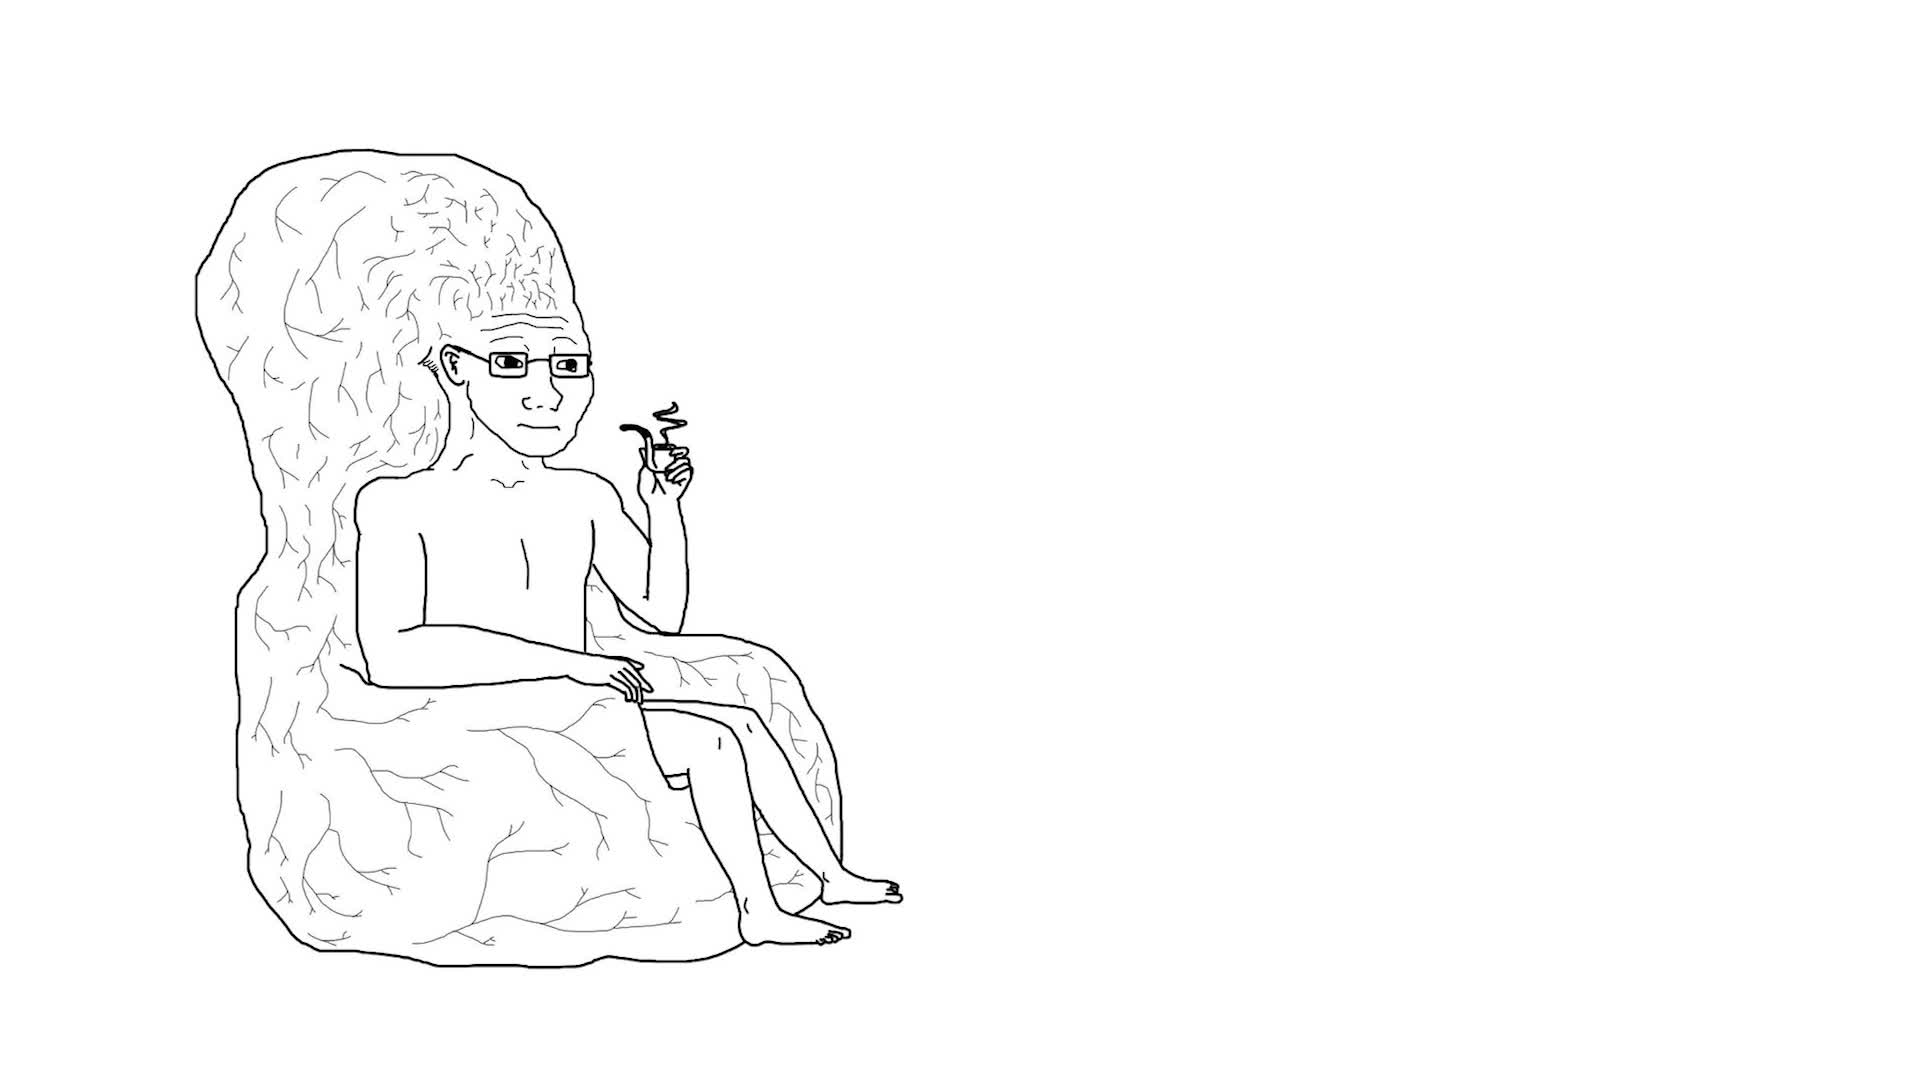 How to make videos like Book-Anon | Adobe Premiere Pro Video Editing Tutorial